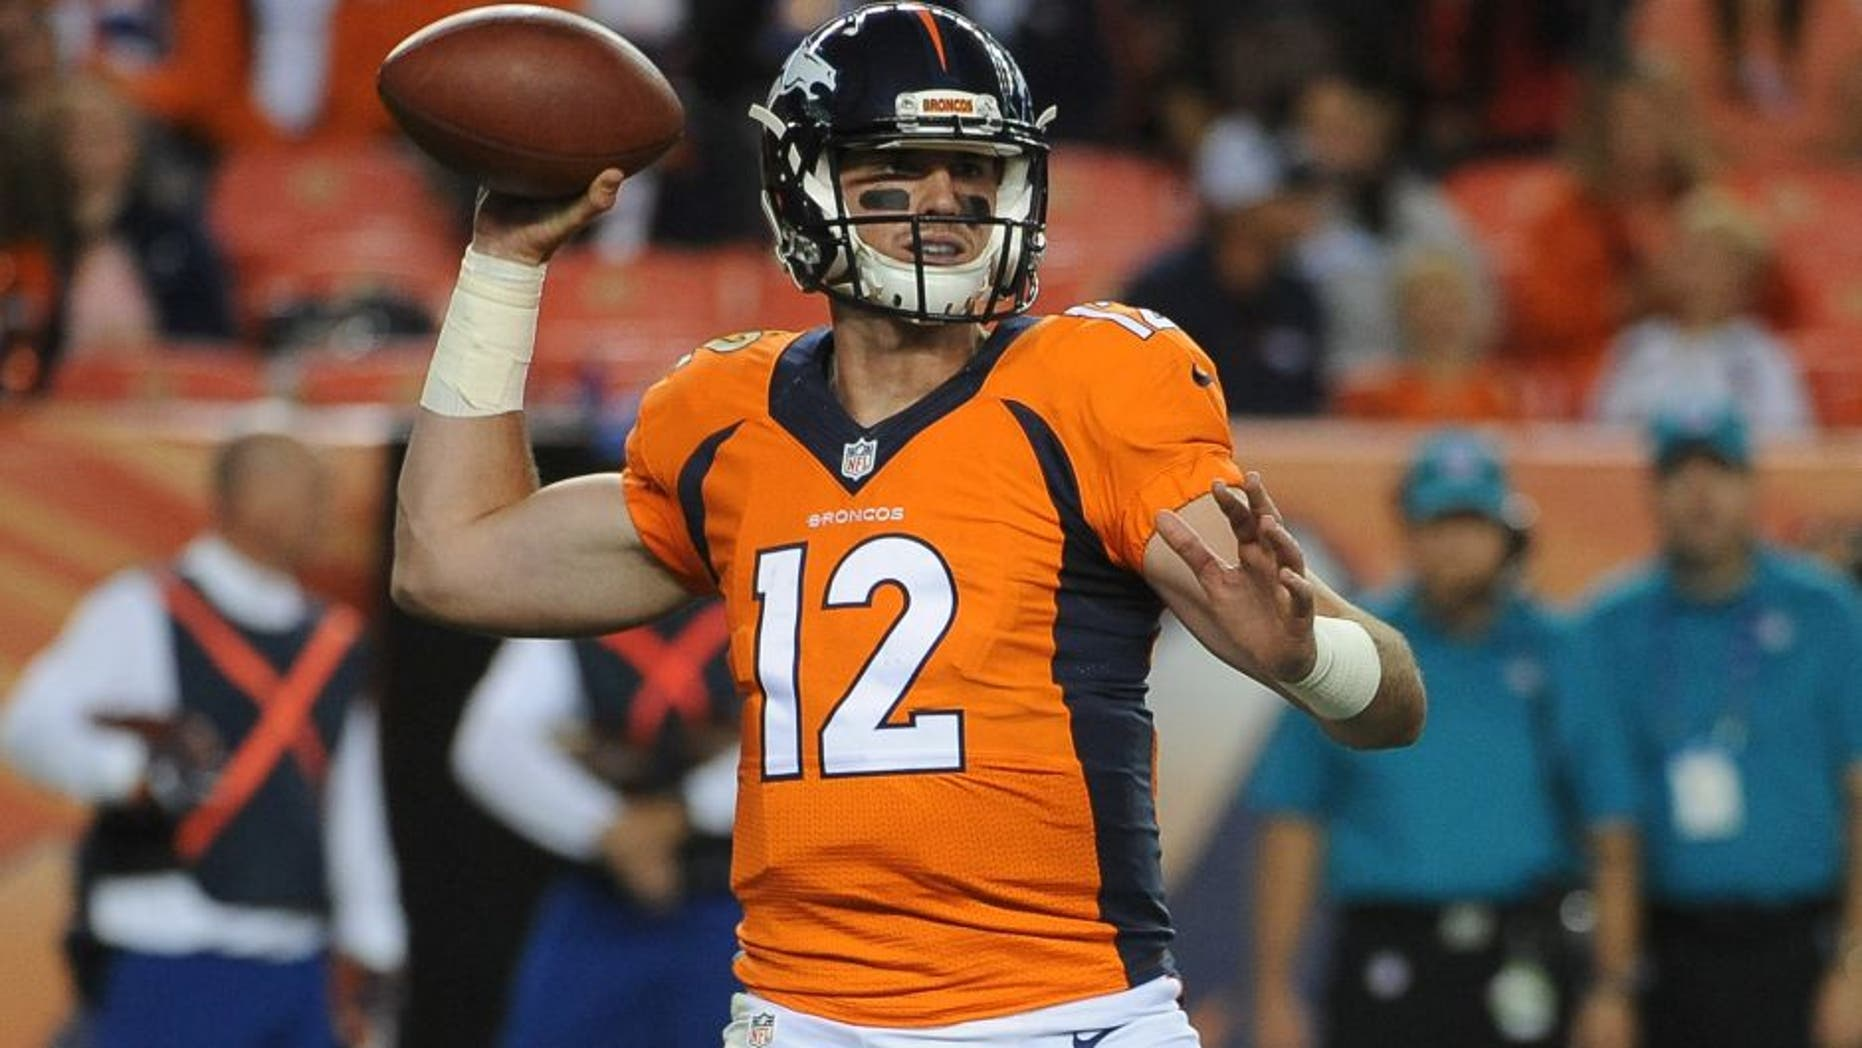 DENVER, CO - AUGUST 20: Denver Broncos quarterback Paxton Lynch sets to pass in the fourth quarter against the San Francisco 49ers at Sports Authority Field at Mile High on Saturday, August 20, 2016. (Photo by Steve Nehf/The Denver Post via Getty Images)